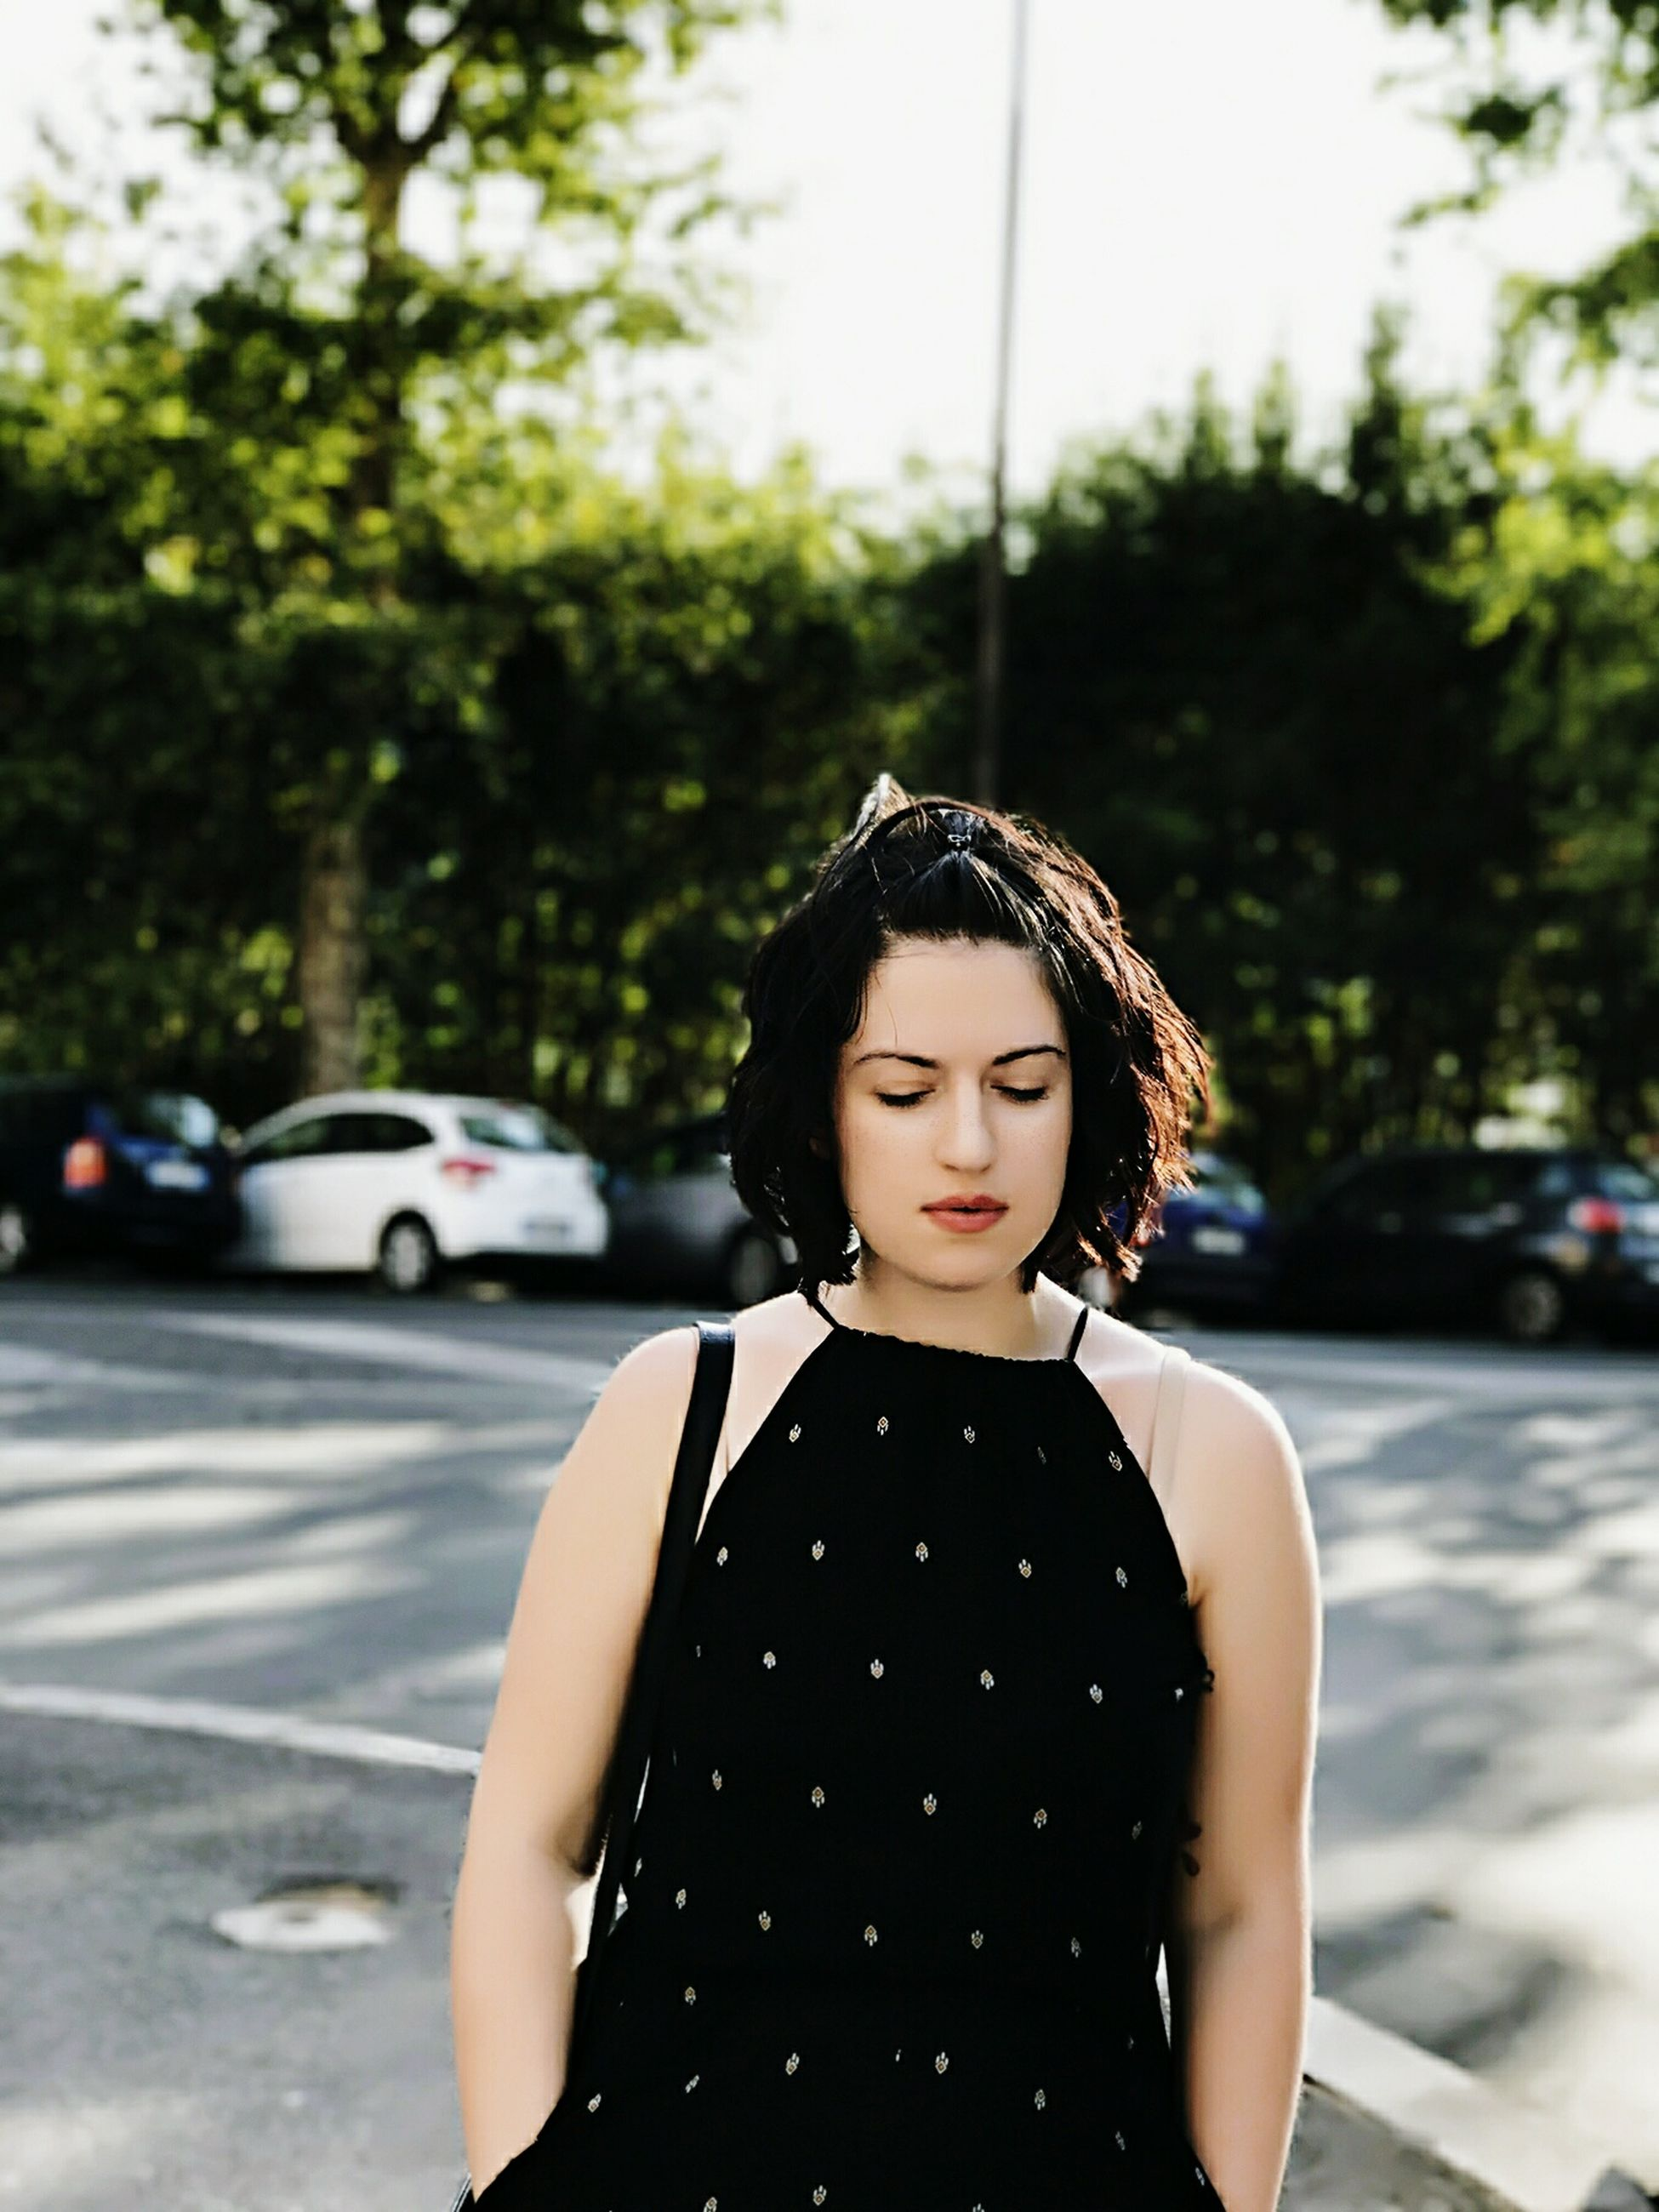 one person, young adult, outdoors, car, waist up, focus on foreground, young women, street, real people, day, front view, standing, transportation, road, tree, beautiful woman, nature, sky, people